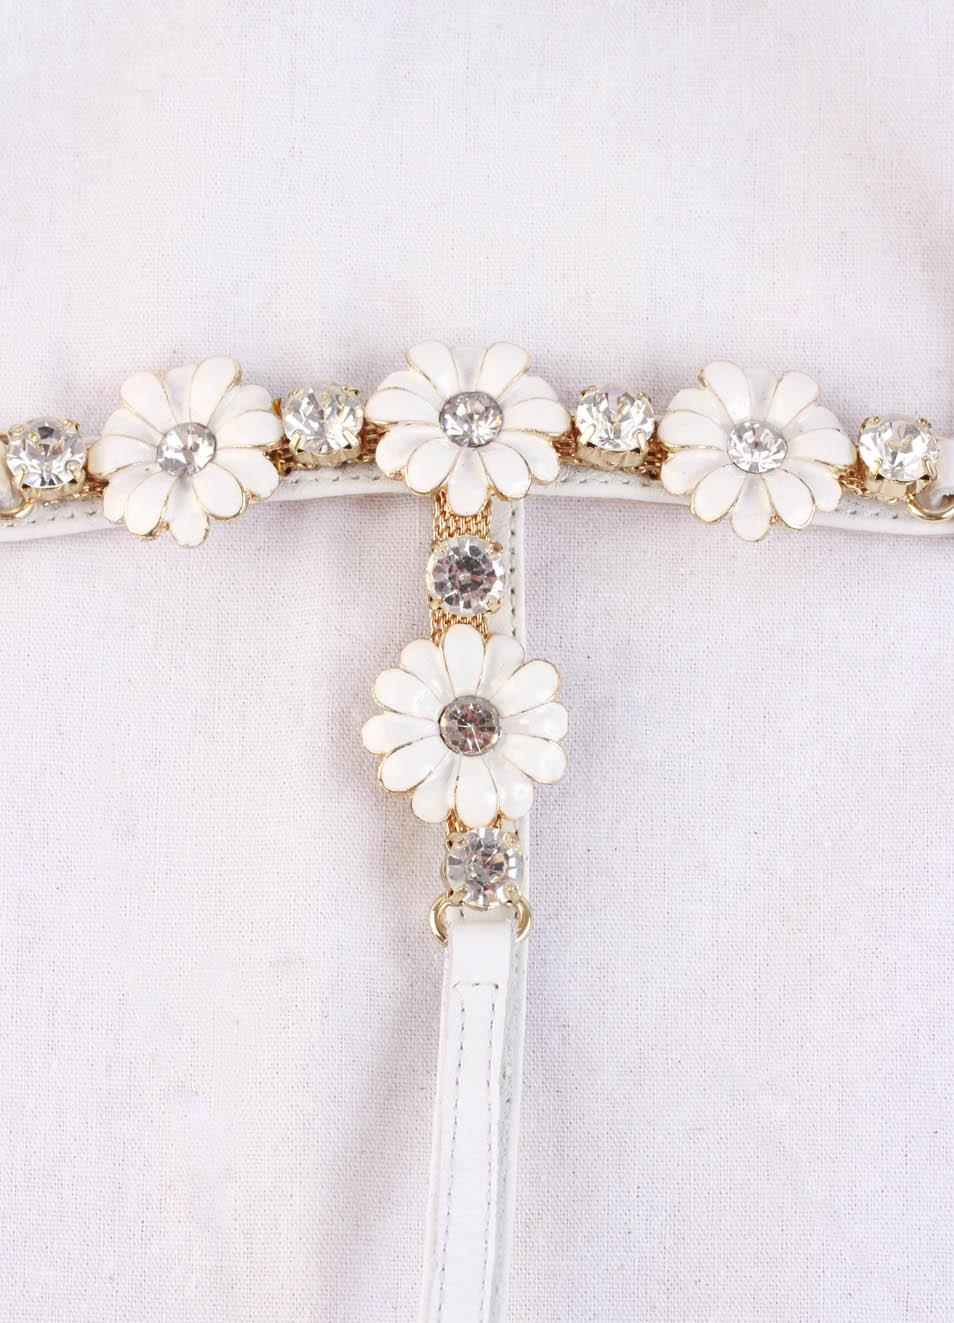 White Jewel Sandals With Flowers For Baby Girl Cuccurullo Manecapri